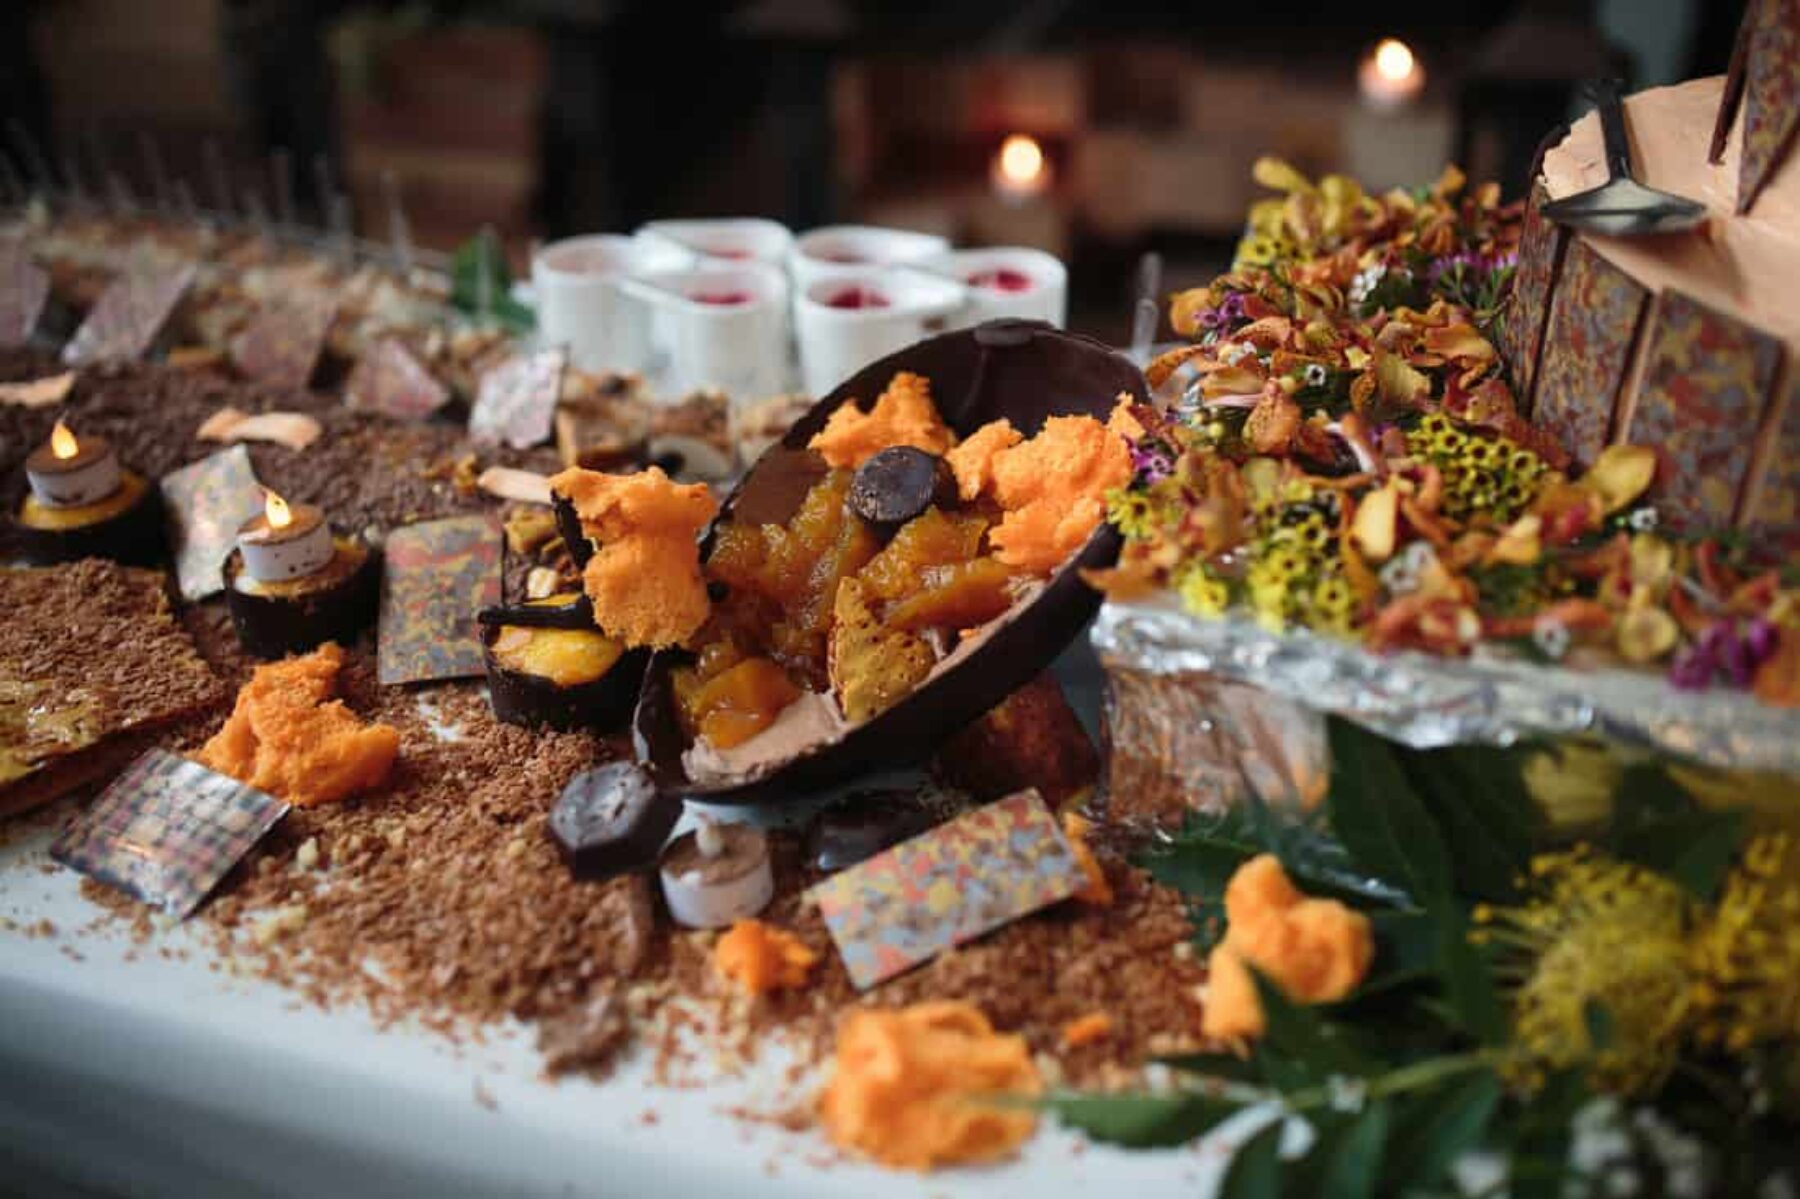 Chocolate tablescape by Robert Erskine